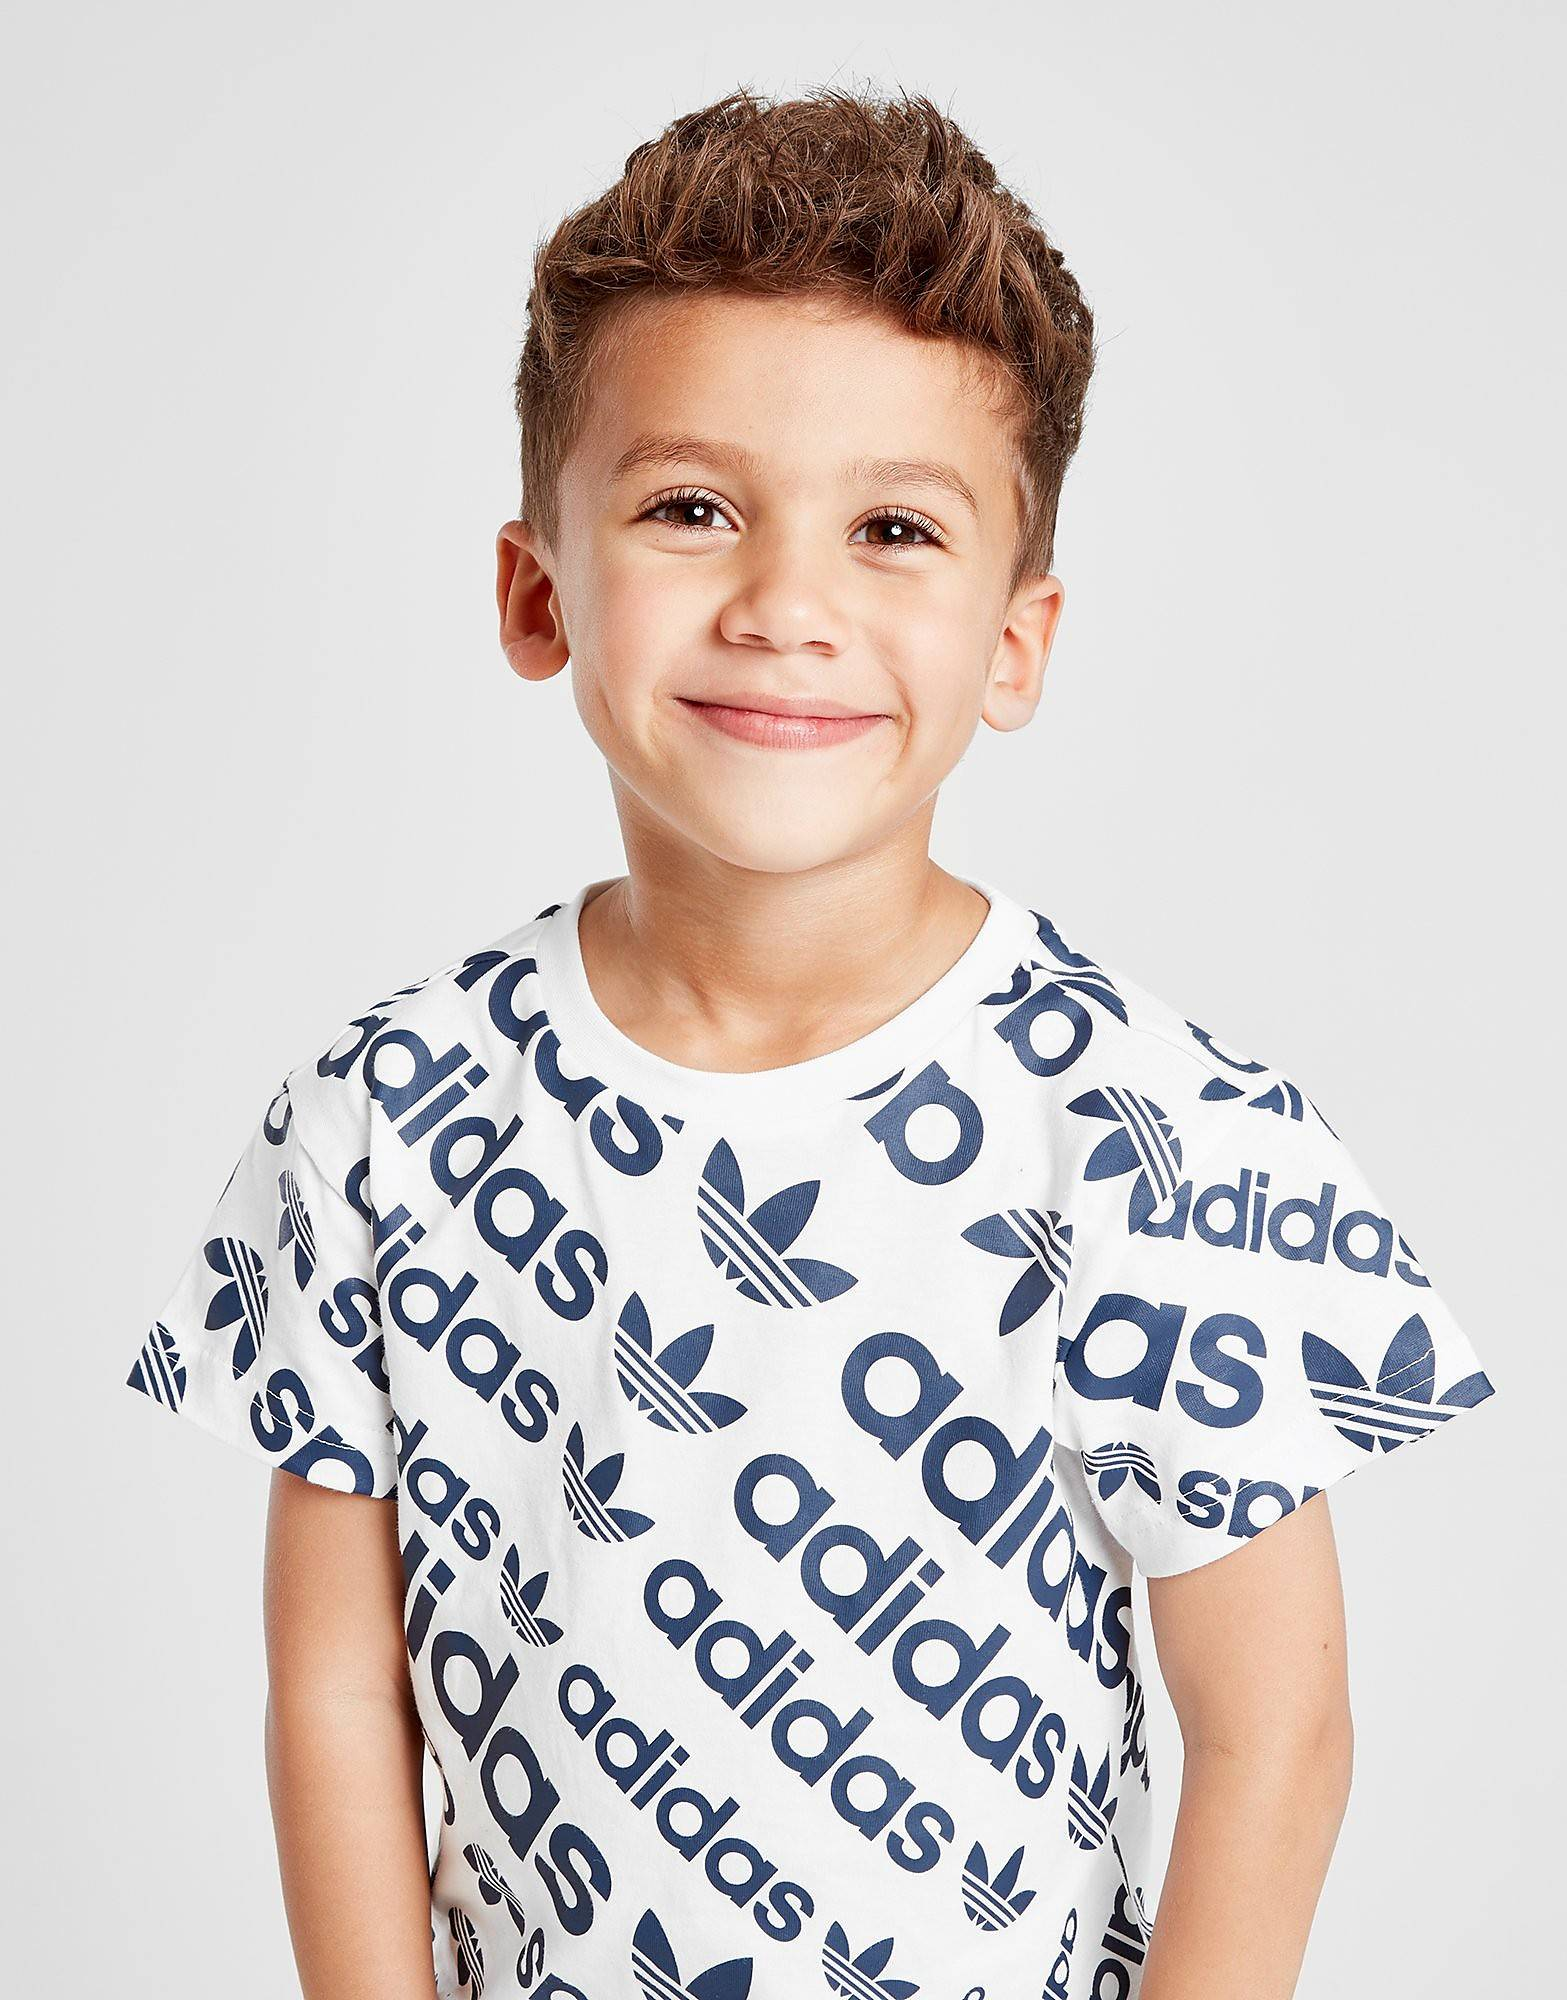 Image of Adidas Originals T-paita Lapset - Only at JD - Kids, Valkoinen